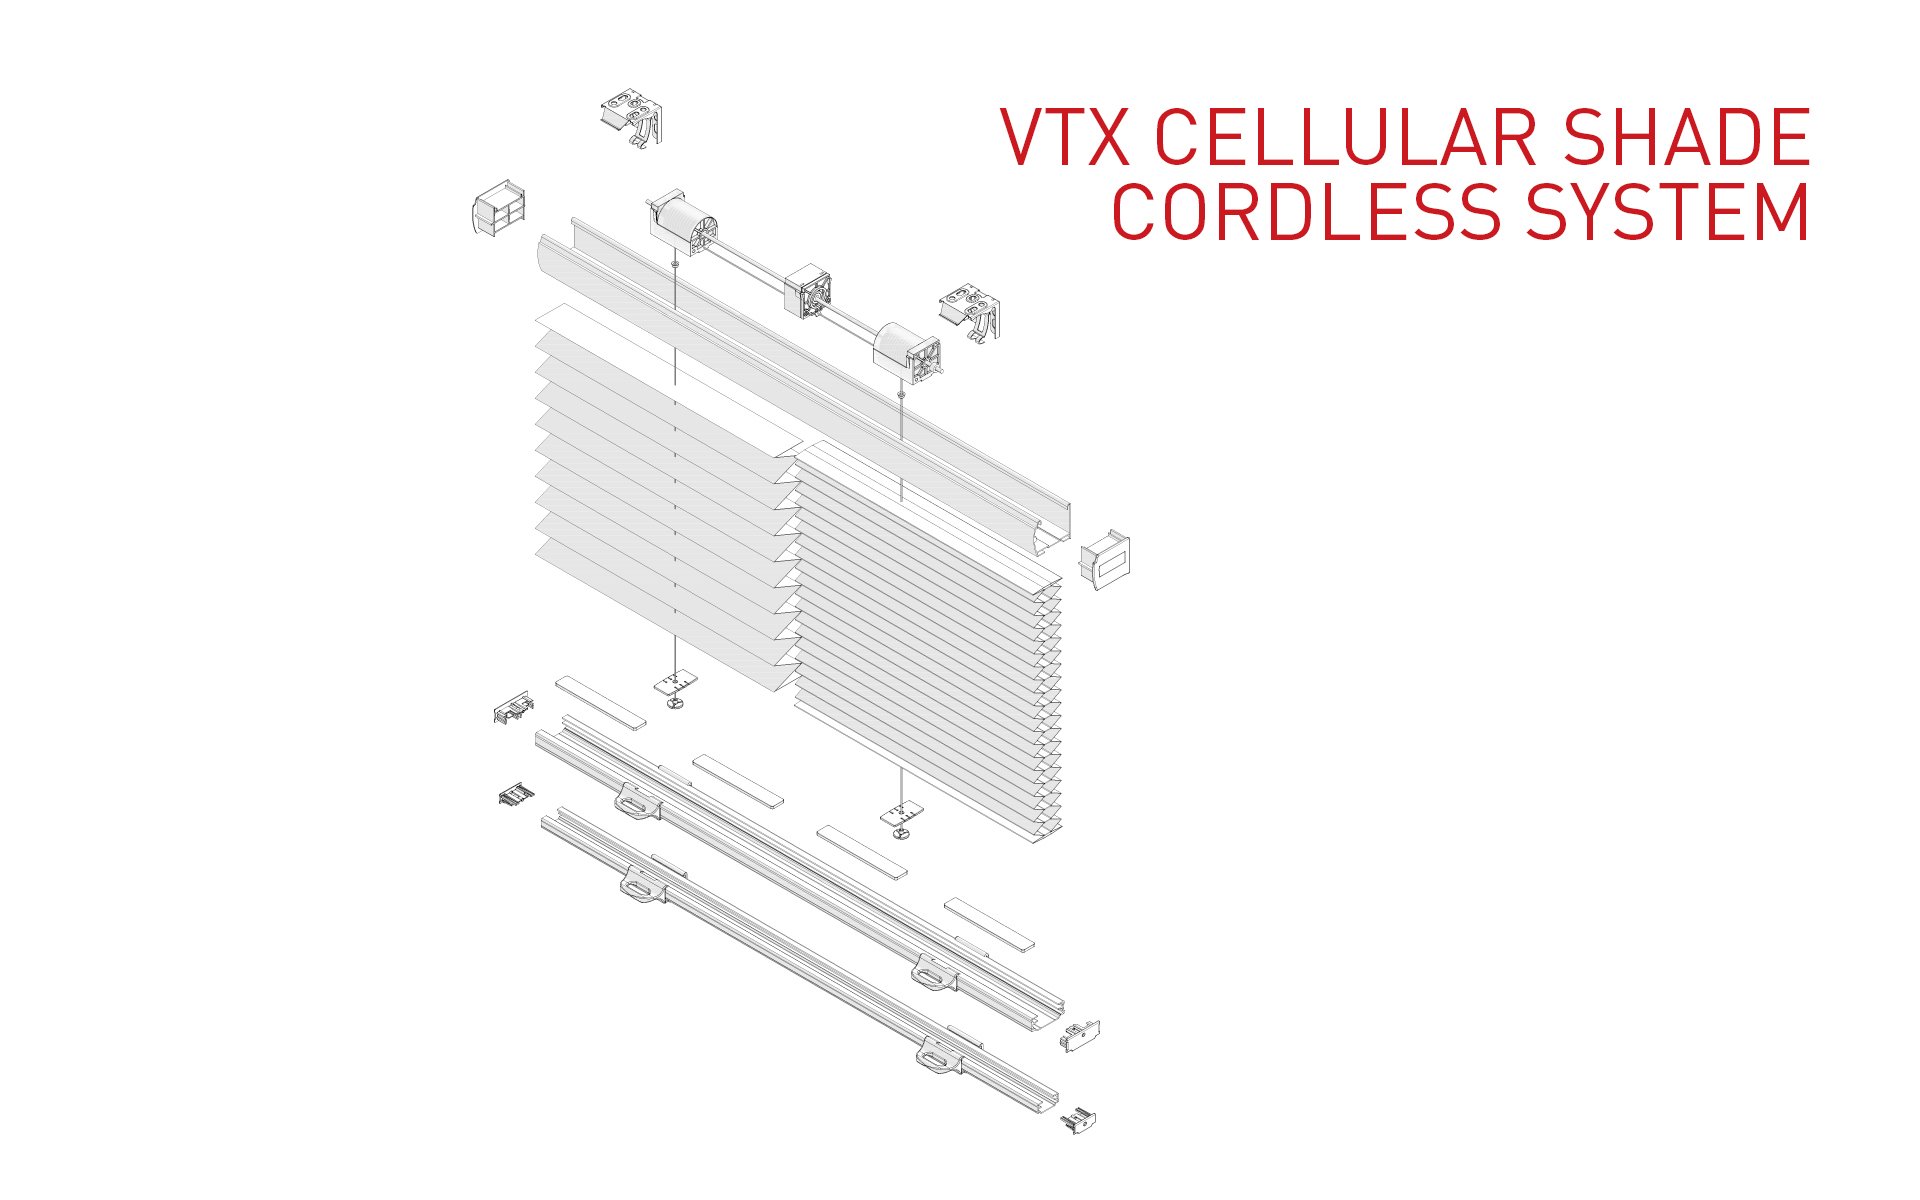 VTX_Cellular_Shade_Cordless_System.jpg